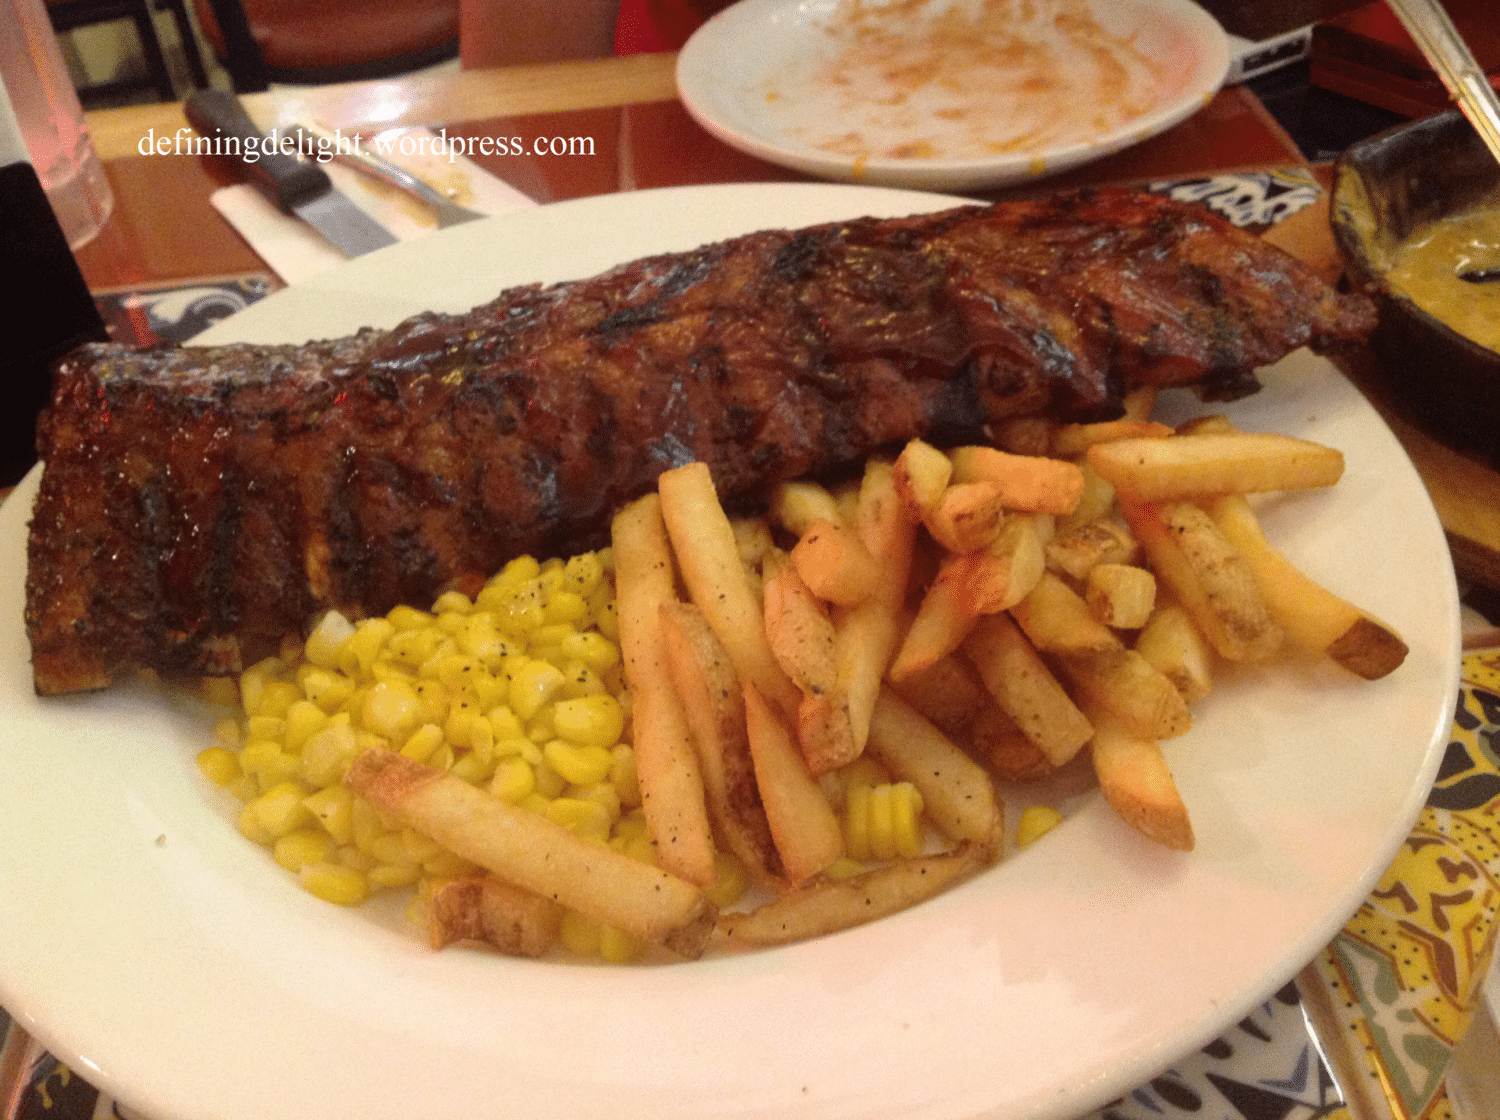 Honey Bbq Ribs From Chili S Nurtrition Amp Price